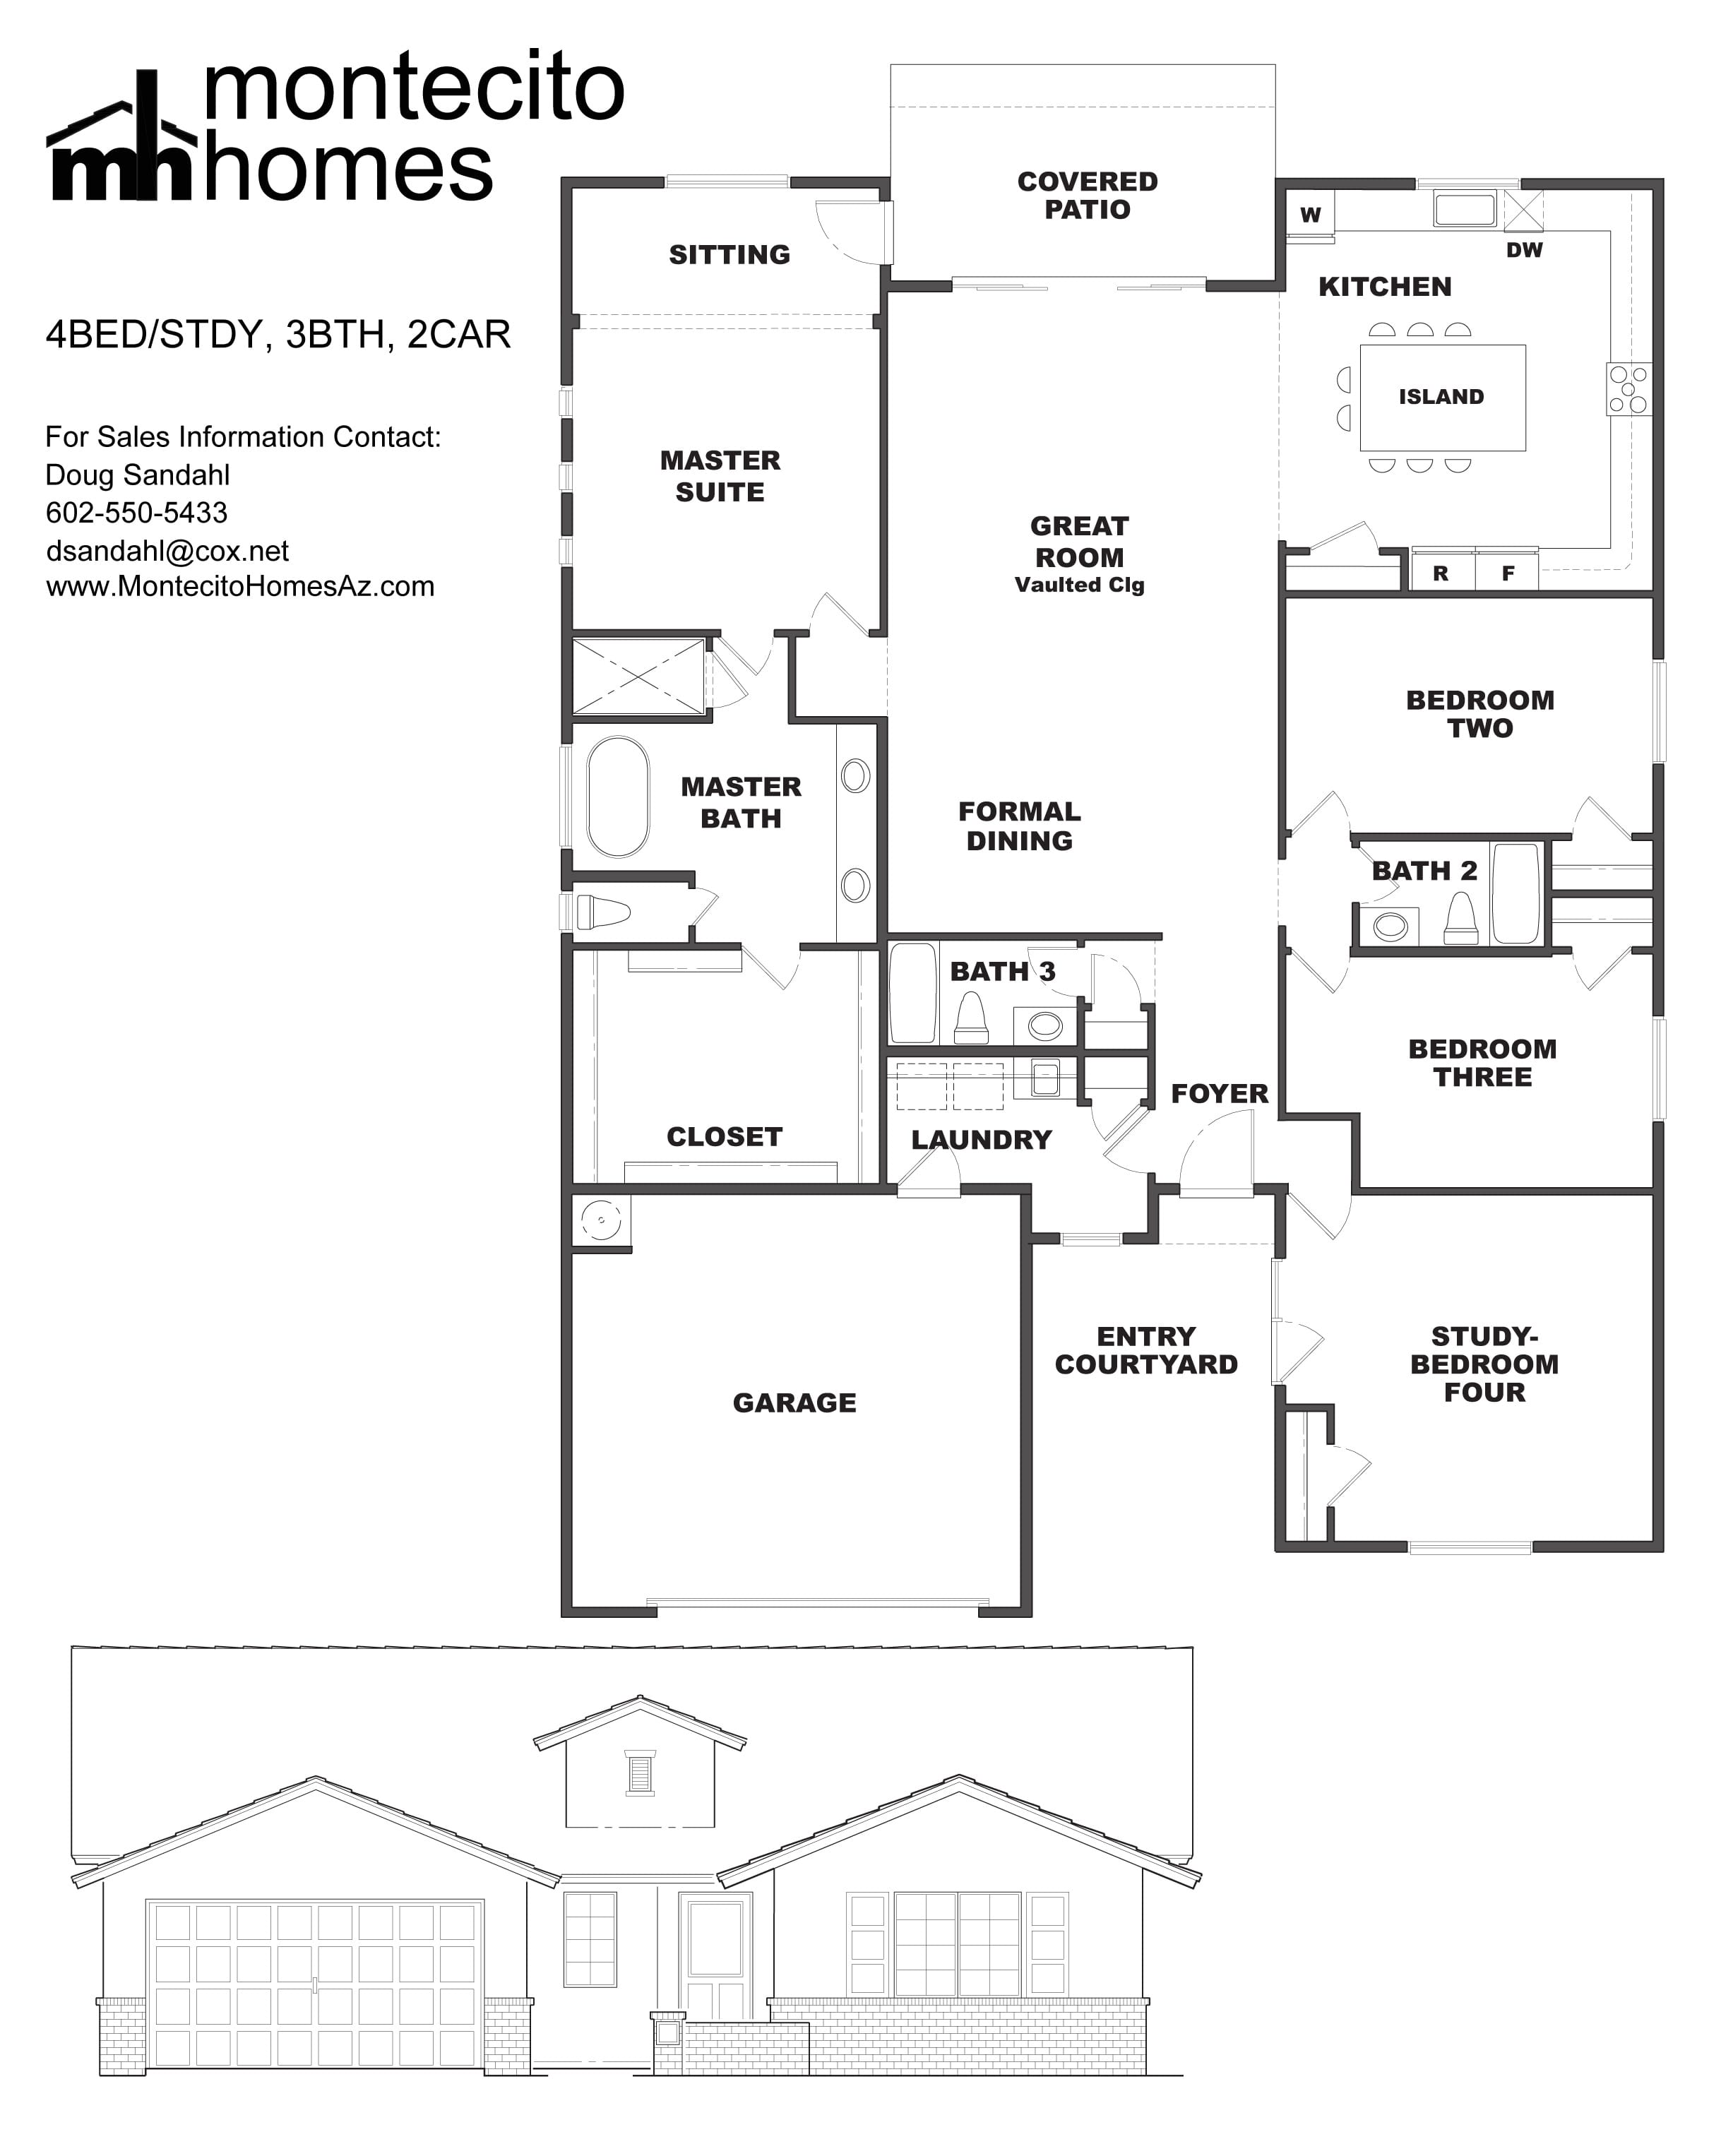 Montecito Homes Floorplan